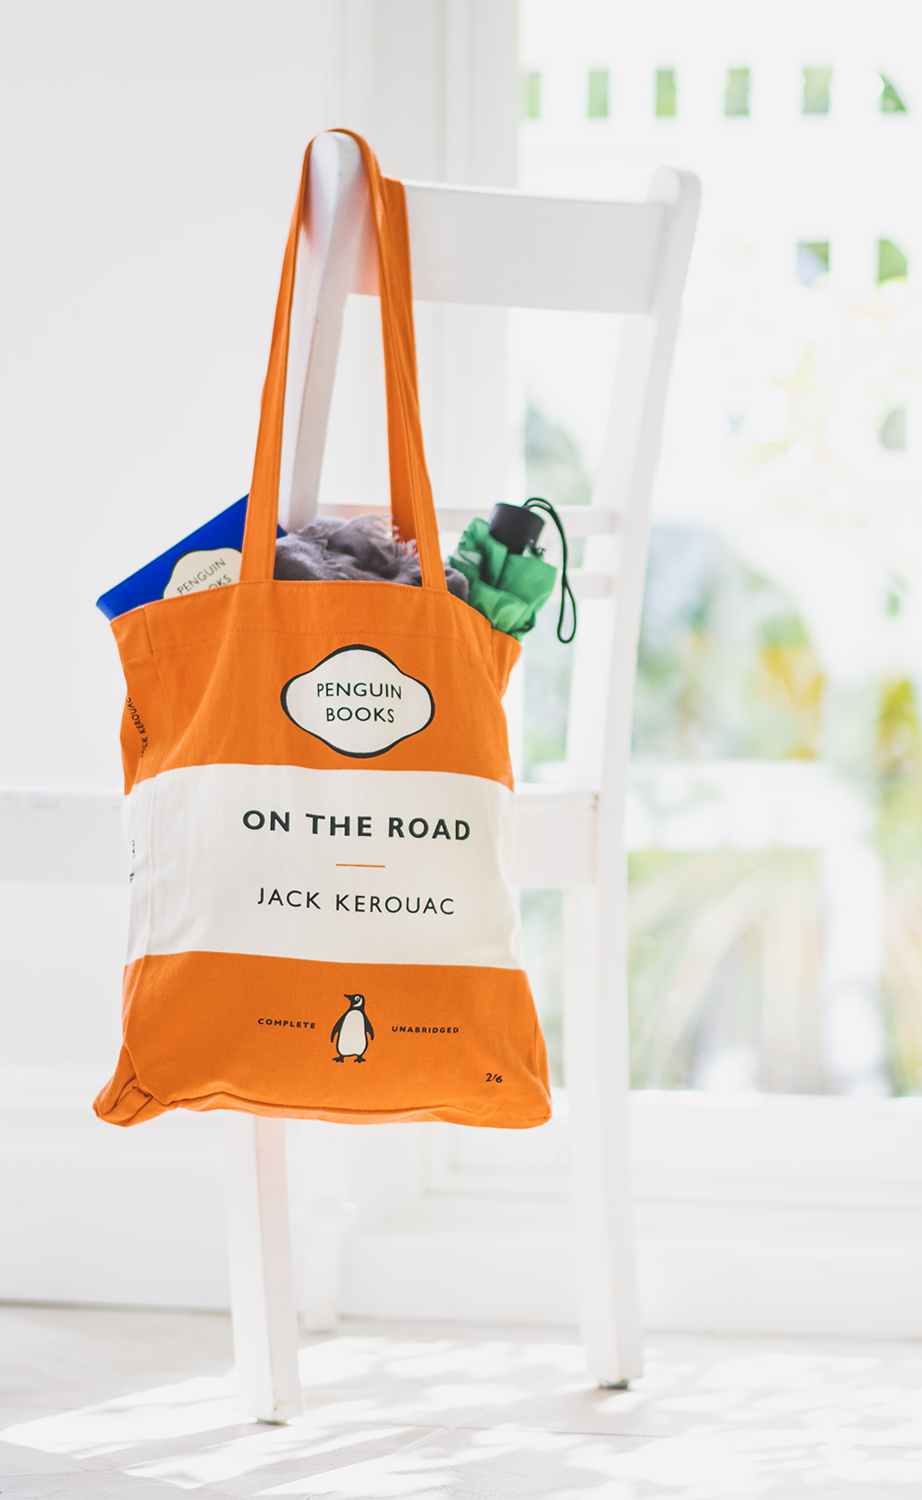 Penguin Book Cover Tote Bag : Our penguin classics tote bags are roomy enough to carry